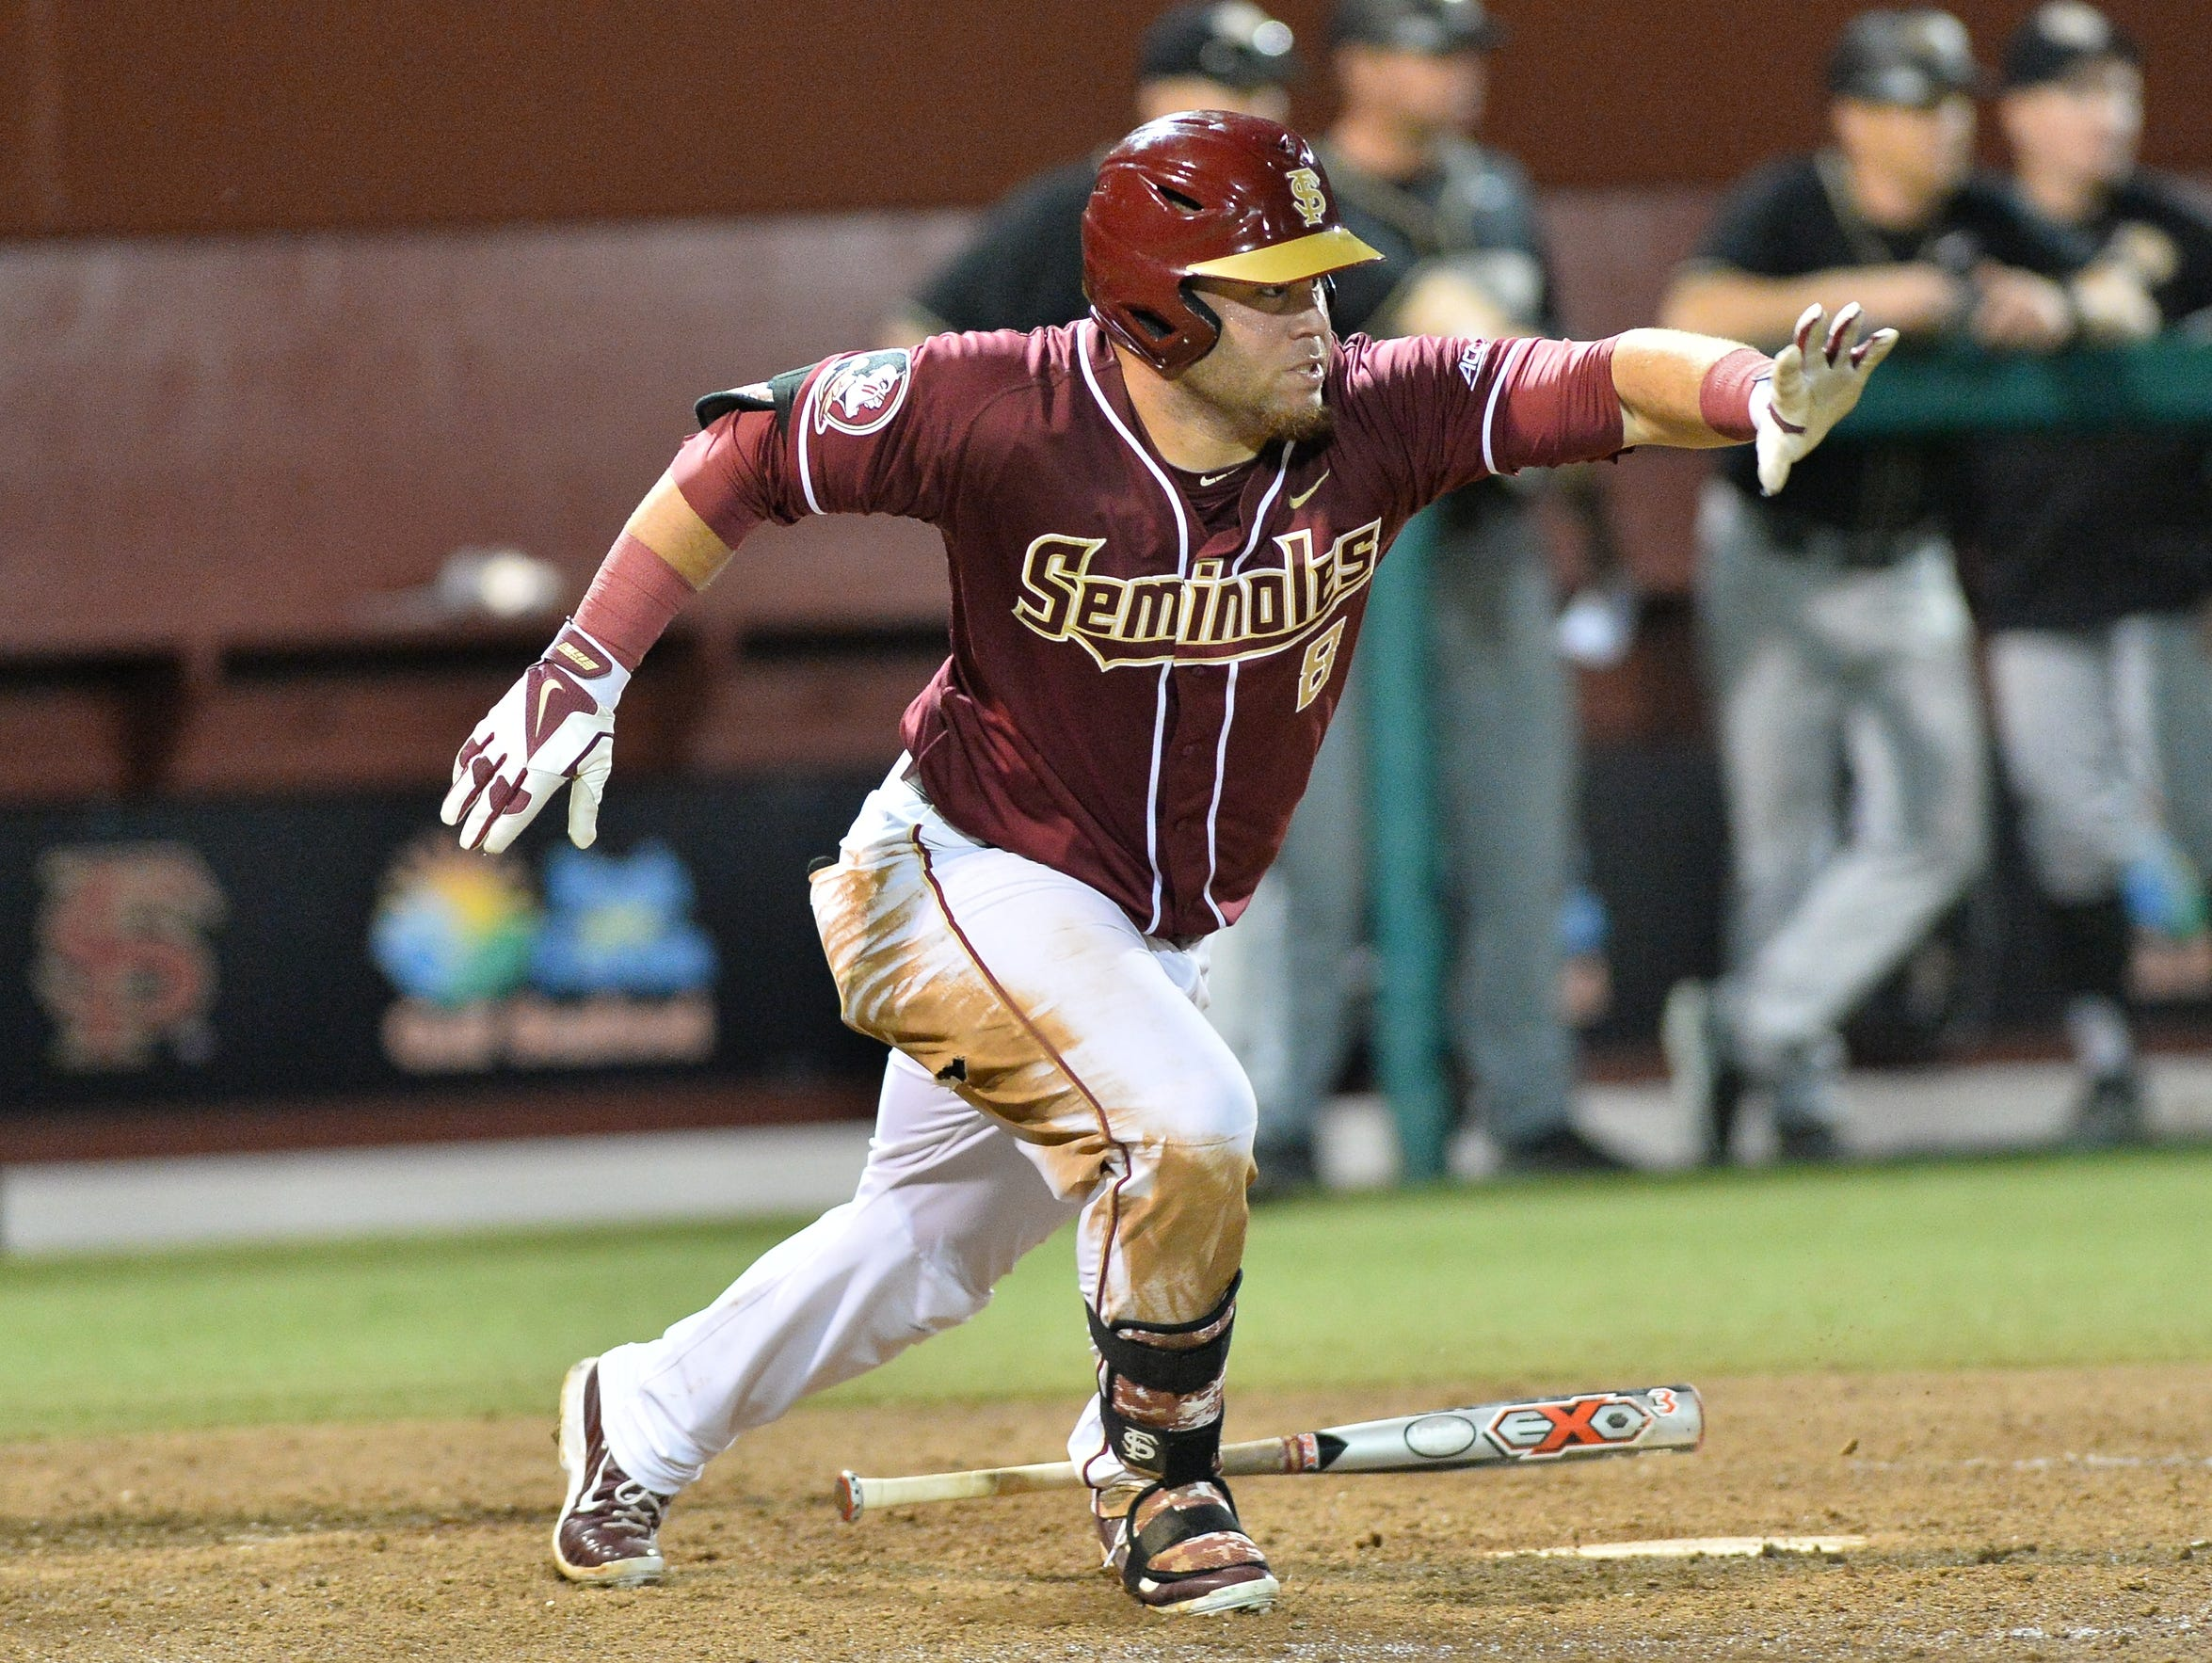 DJ Stewart is the unquestioned leader of this Seminole